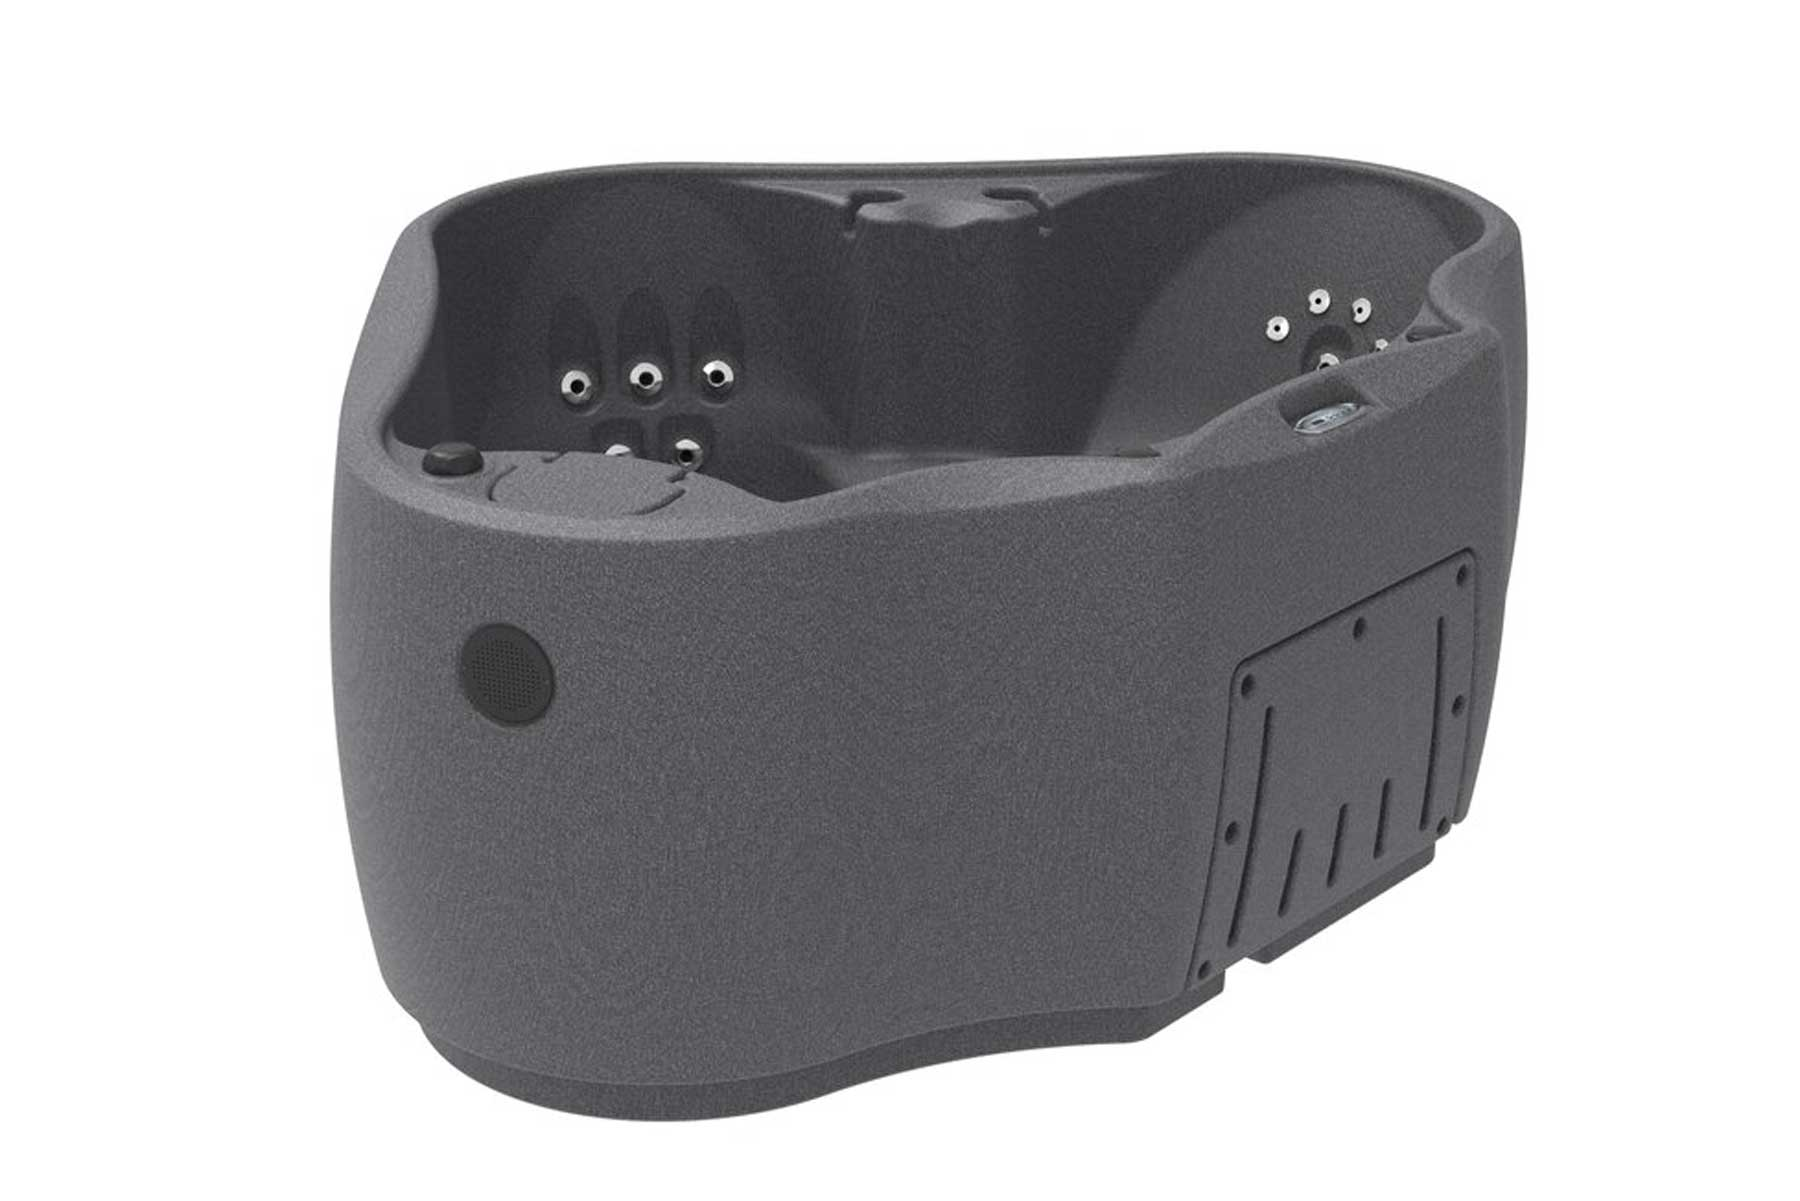 Premium 300 2-Person 20-Jet Plug and Play Hot Tub with Stainless Steel Heater